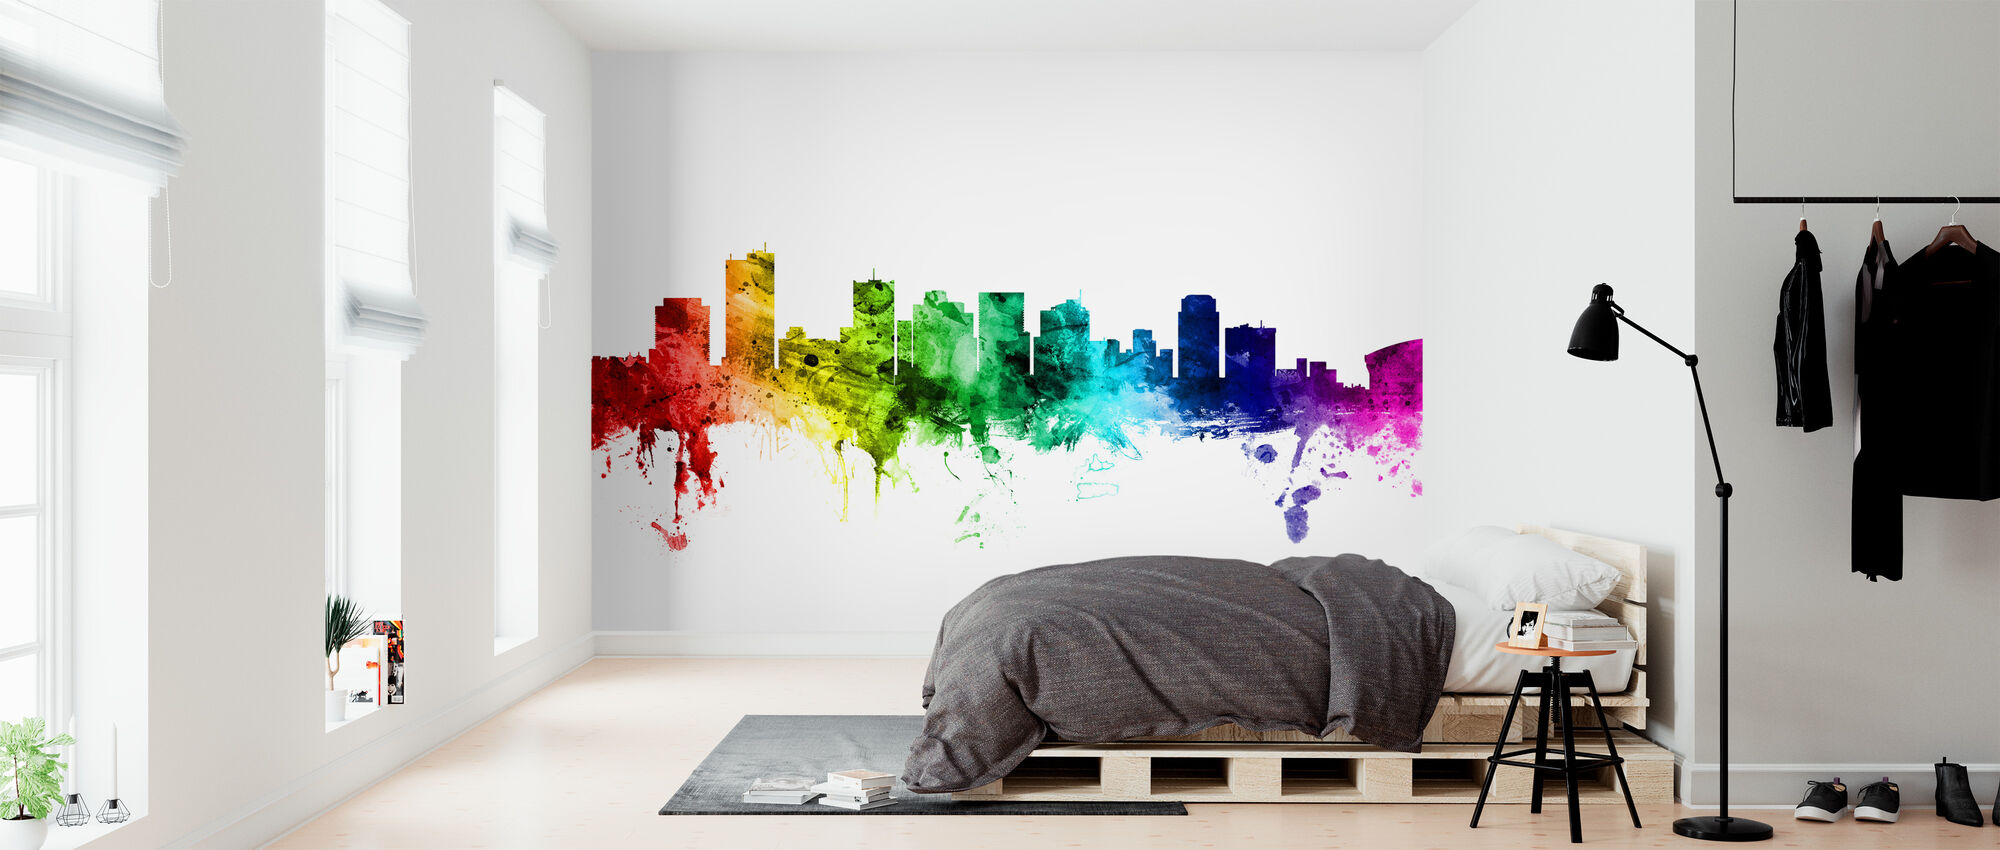 Phoenix Arizona Skyline Rainbow - Wallpaper - Bedroom